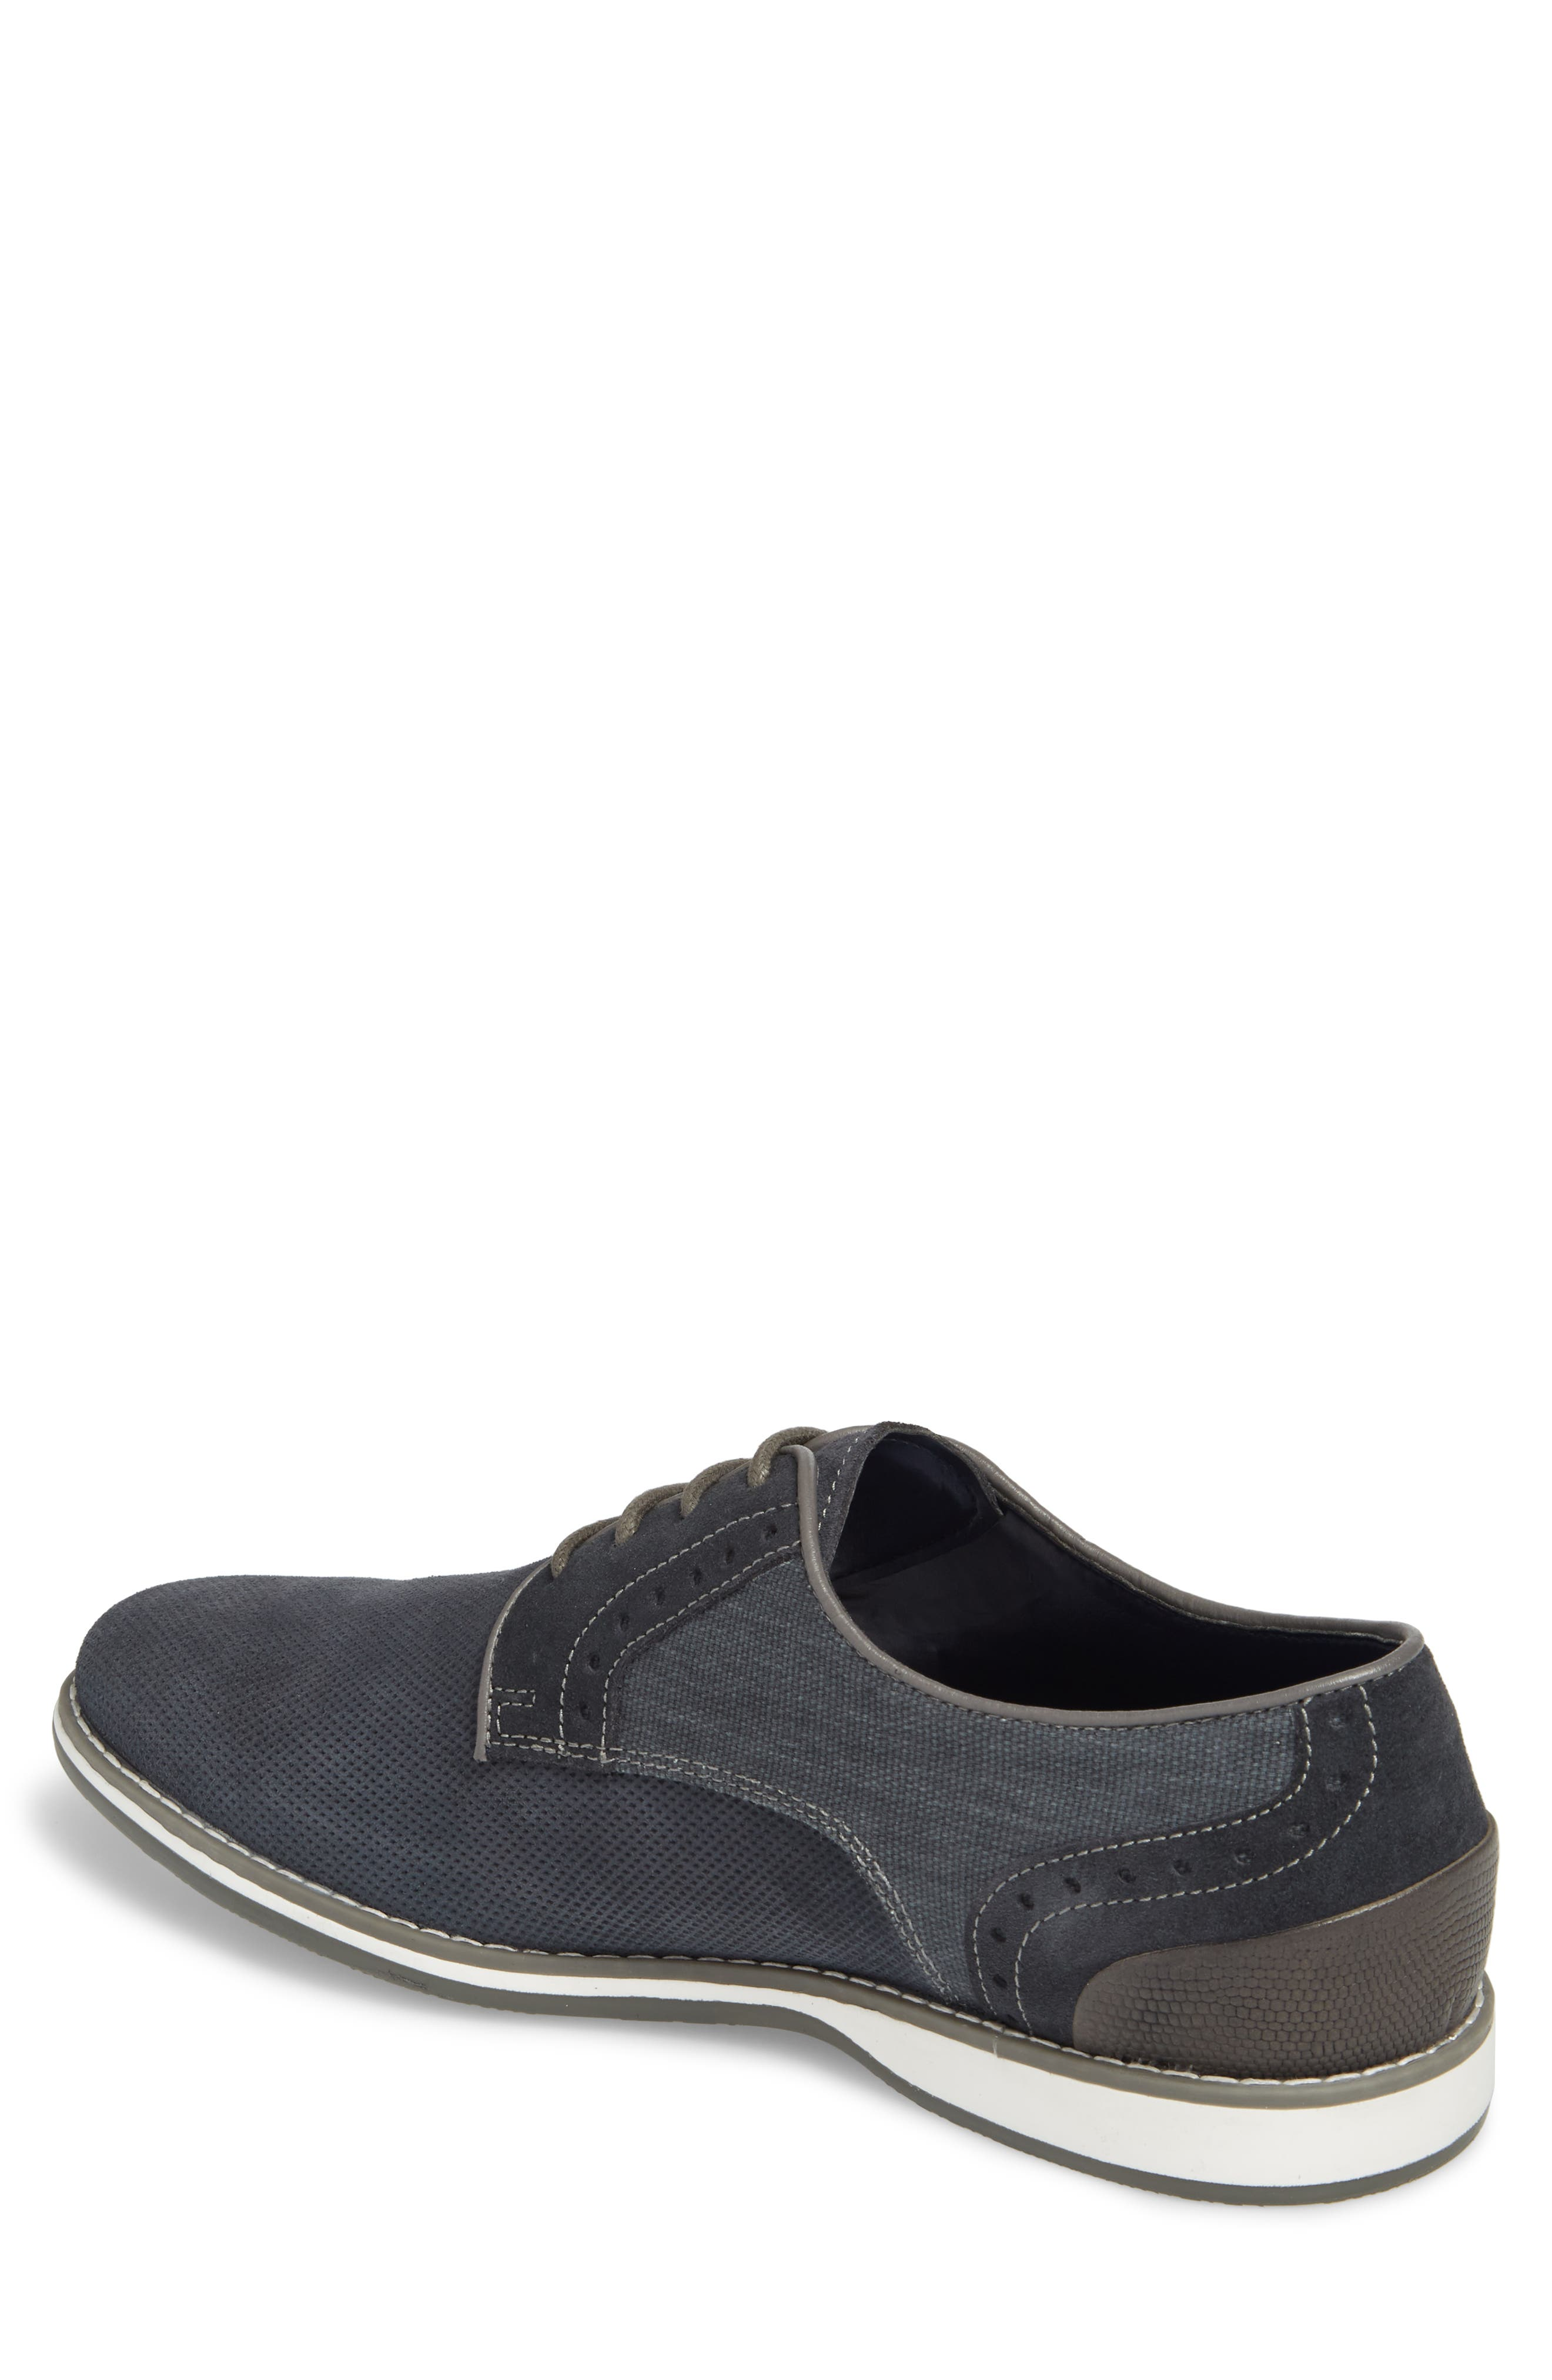 REACTION KENNETH COLE, Weiser Lace-up Derby, Alternate thumbnail 2, color, 410